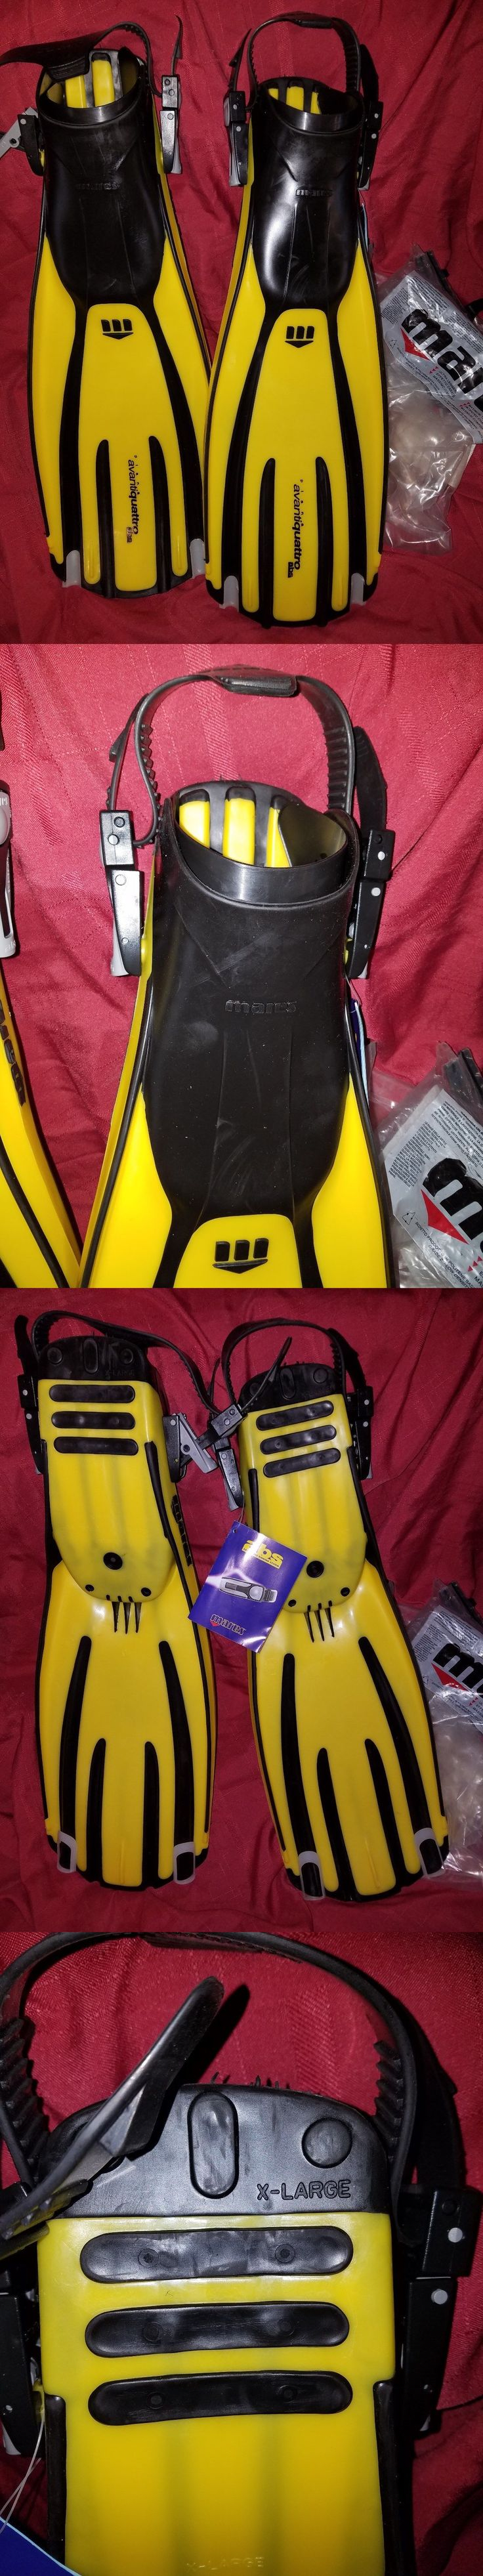 Fins 16054: Mares Quattro Fins Scuba Swim Snorkel Extra Large Yellow -> BUY IT NOW ONLY: $59.99 on eBay!